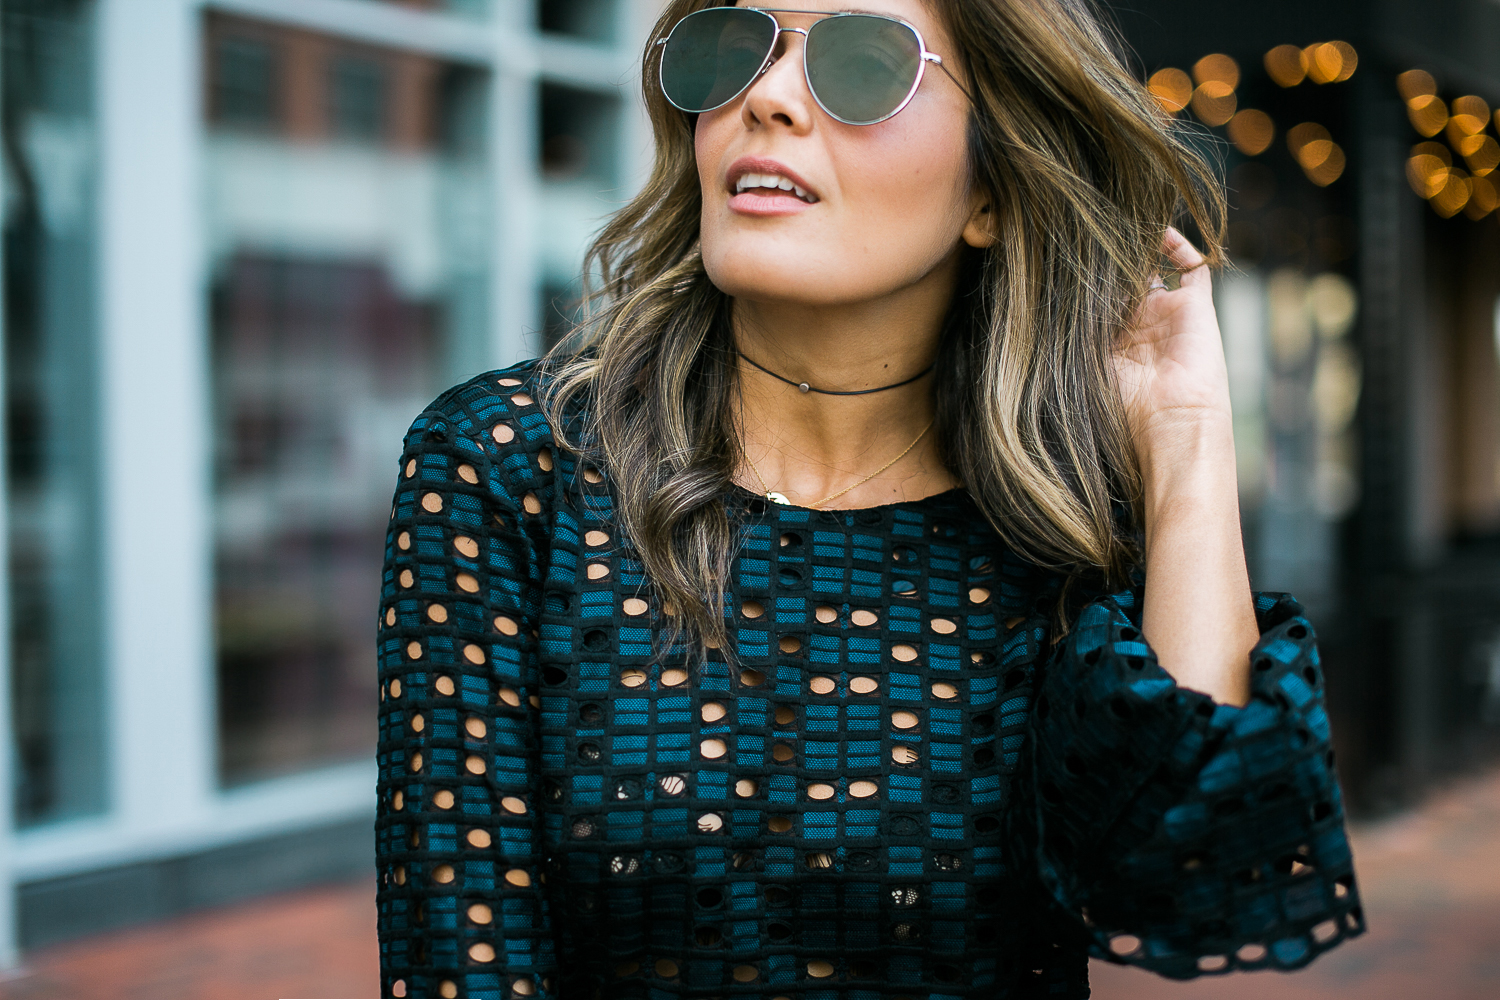 Style MBA wears Ann Taylor Bell Sleeve Top